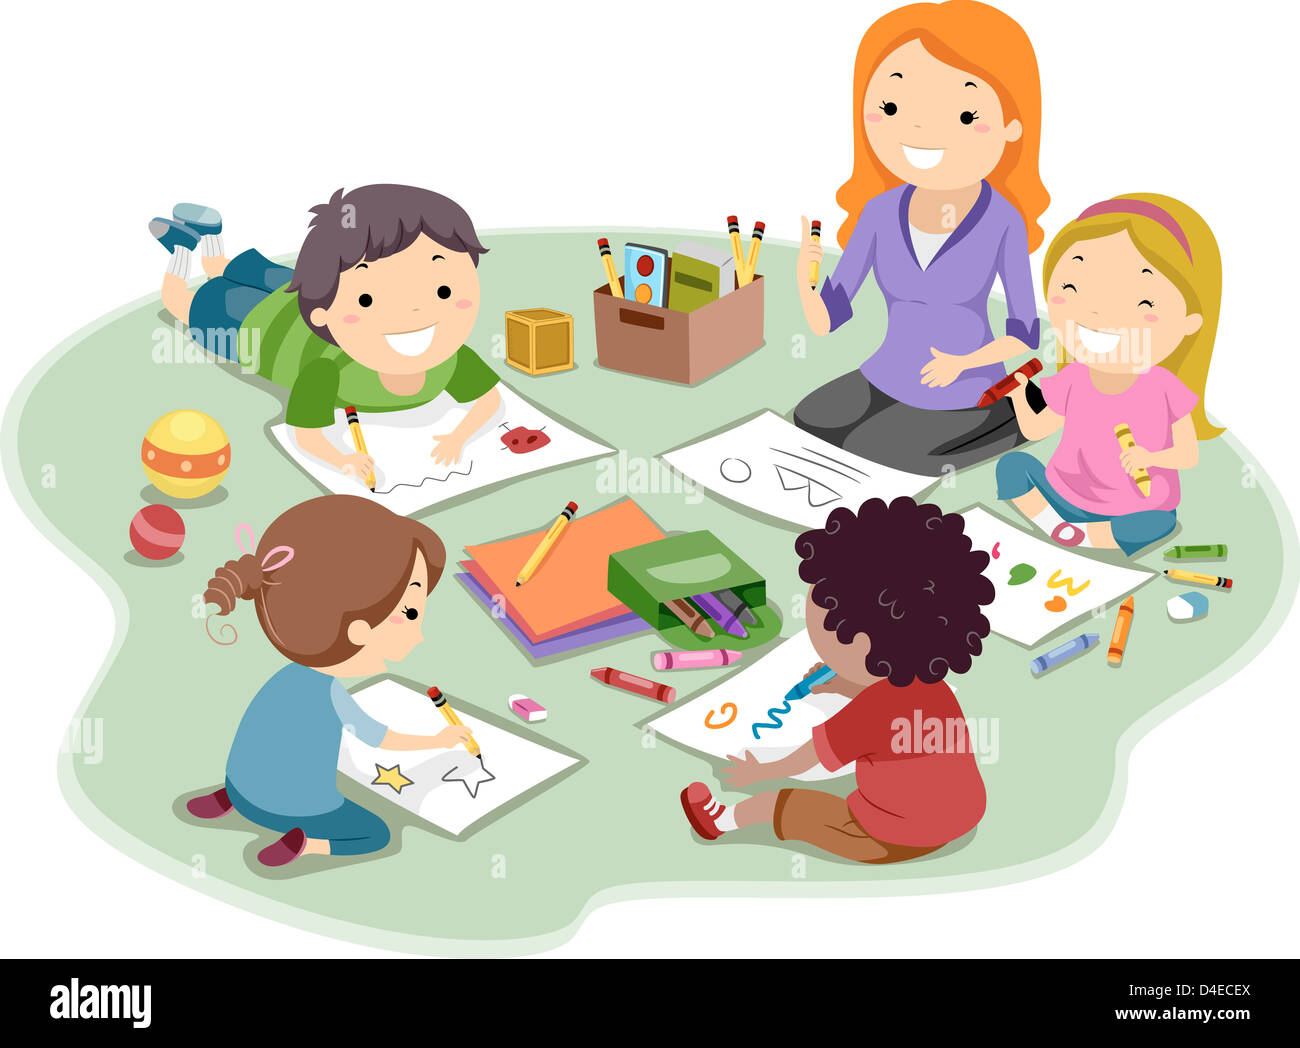 - Kids Coloring And Drawing Stock Photo: 54406882 - Alamy